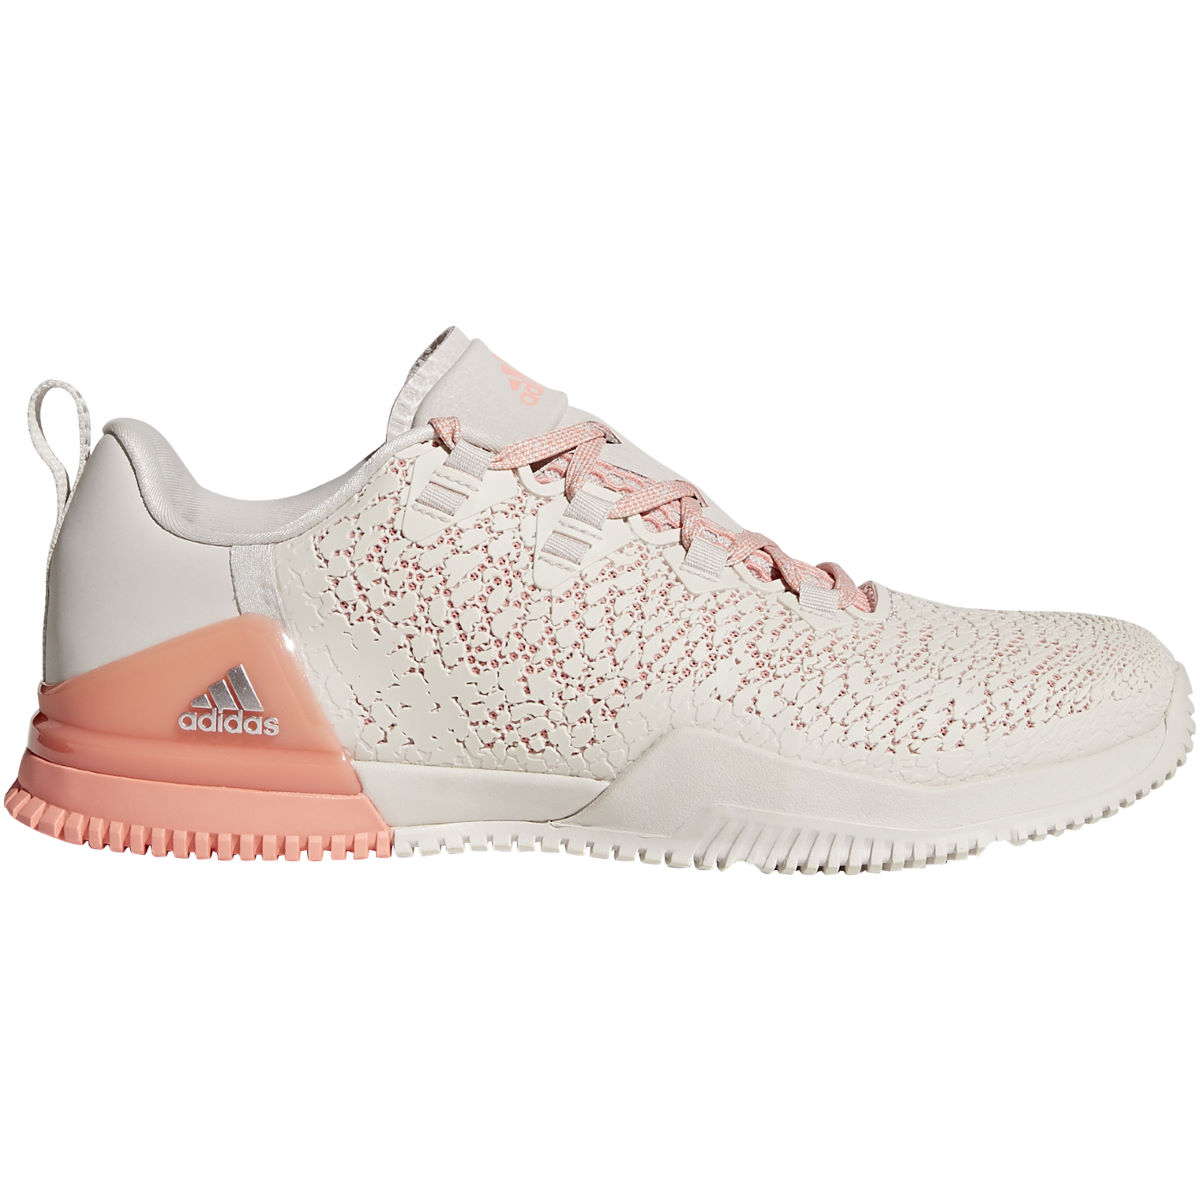 Chaussures Femme adidas CrazyPower TR - 7 CHALK PEARL S18/CHAL